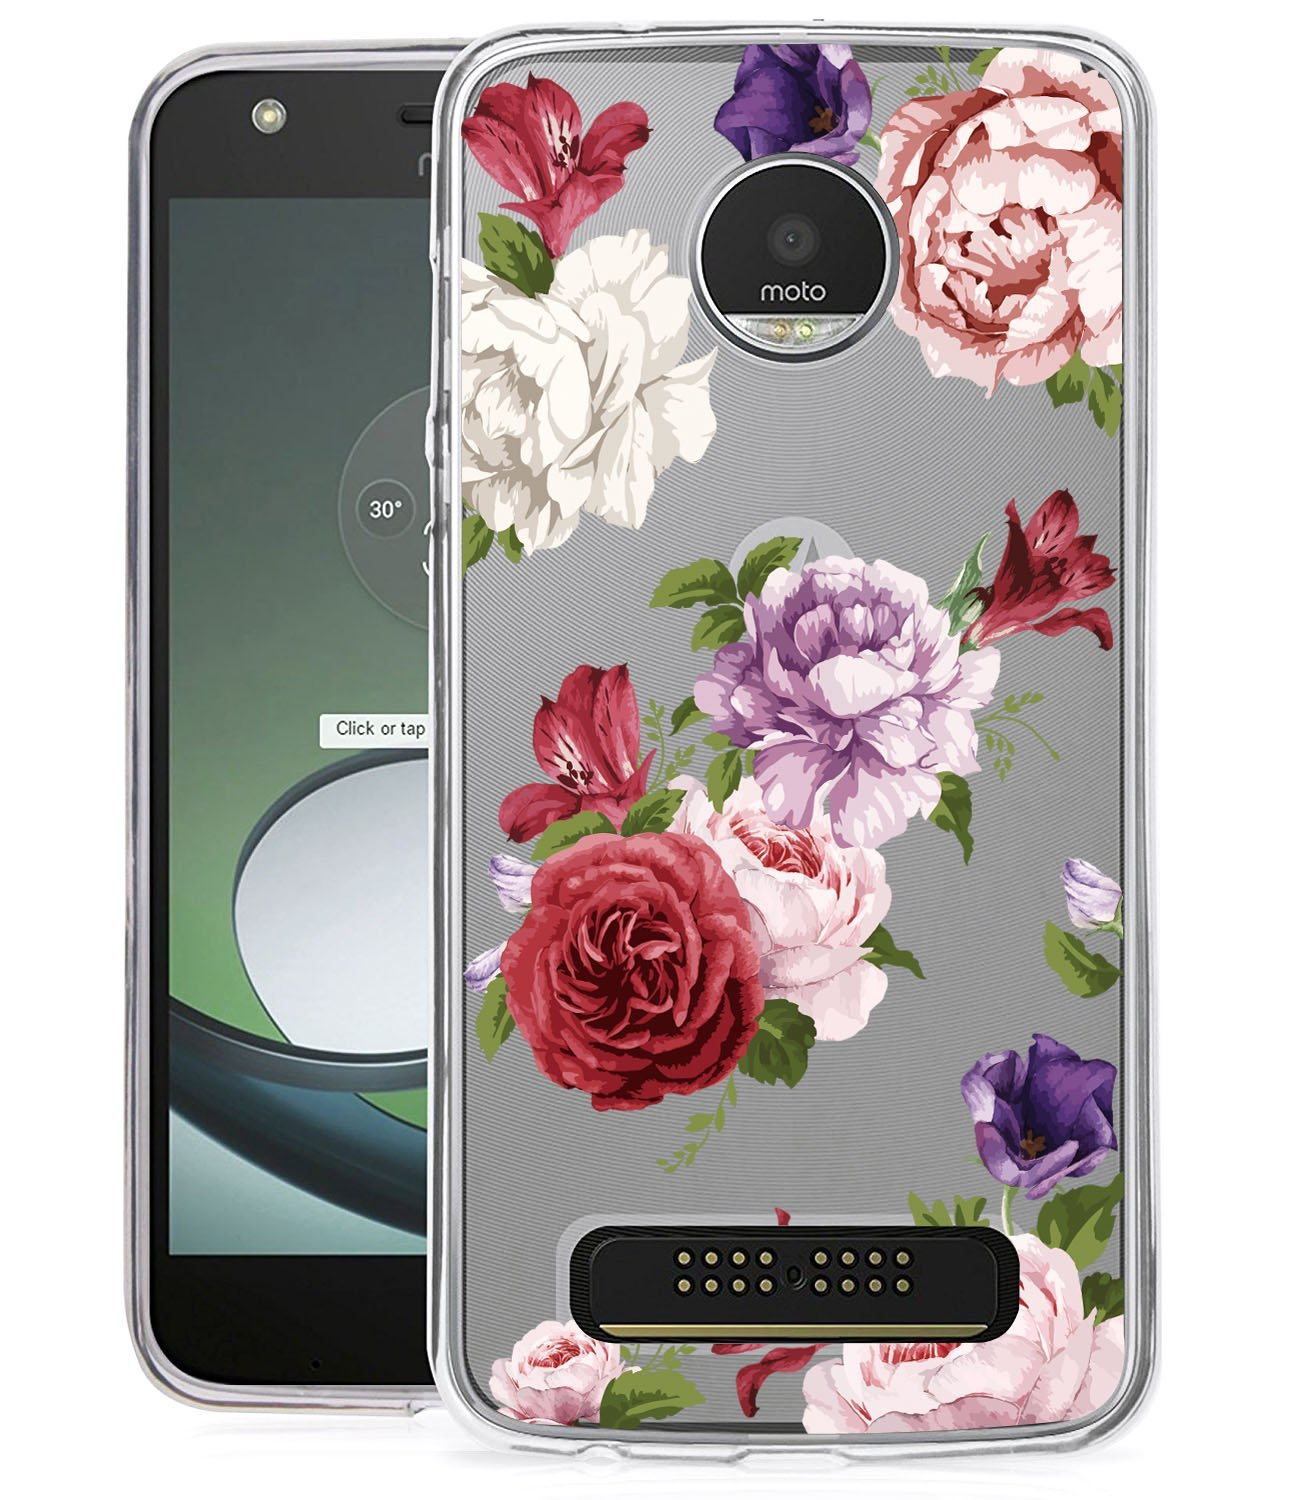 Moto Z2 Play Case, Moto Z2 Force Case with Flowers BAISRKE Slim Shockproof Clear Floral Pattern Soft Flexible TPU Back Cove for Moto Z2 Play/Z2 Force [Purple Pink] 4334973594